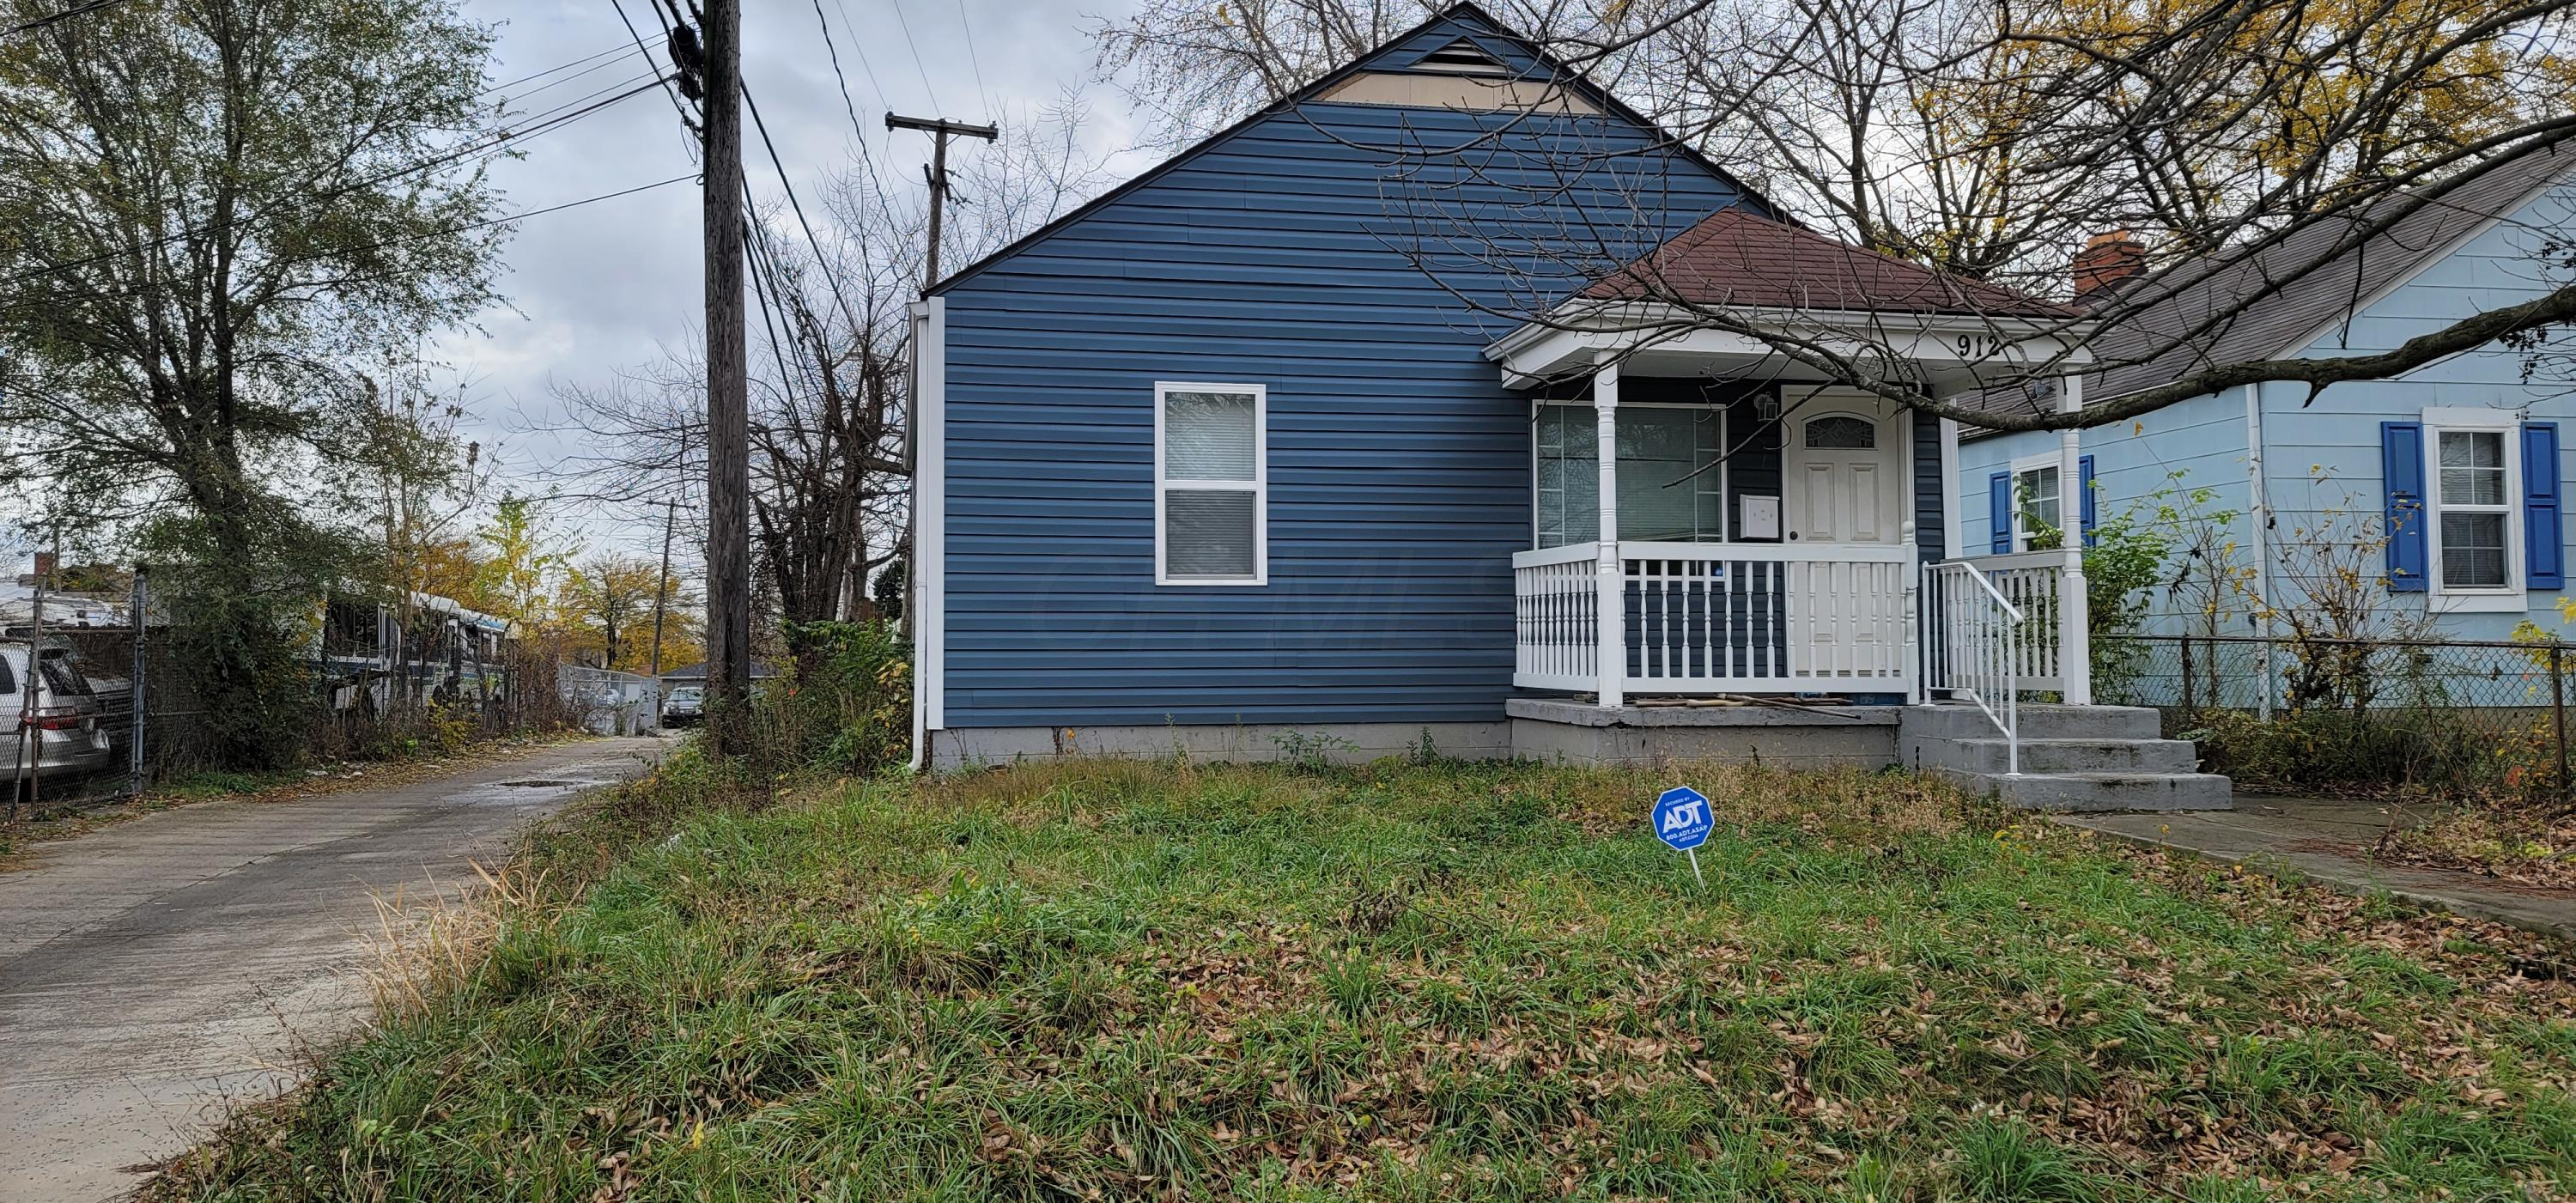 Property for sale at 912 Seymour Avenue, Columbus,  Ohio 43206